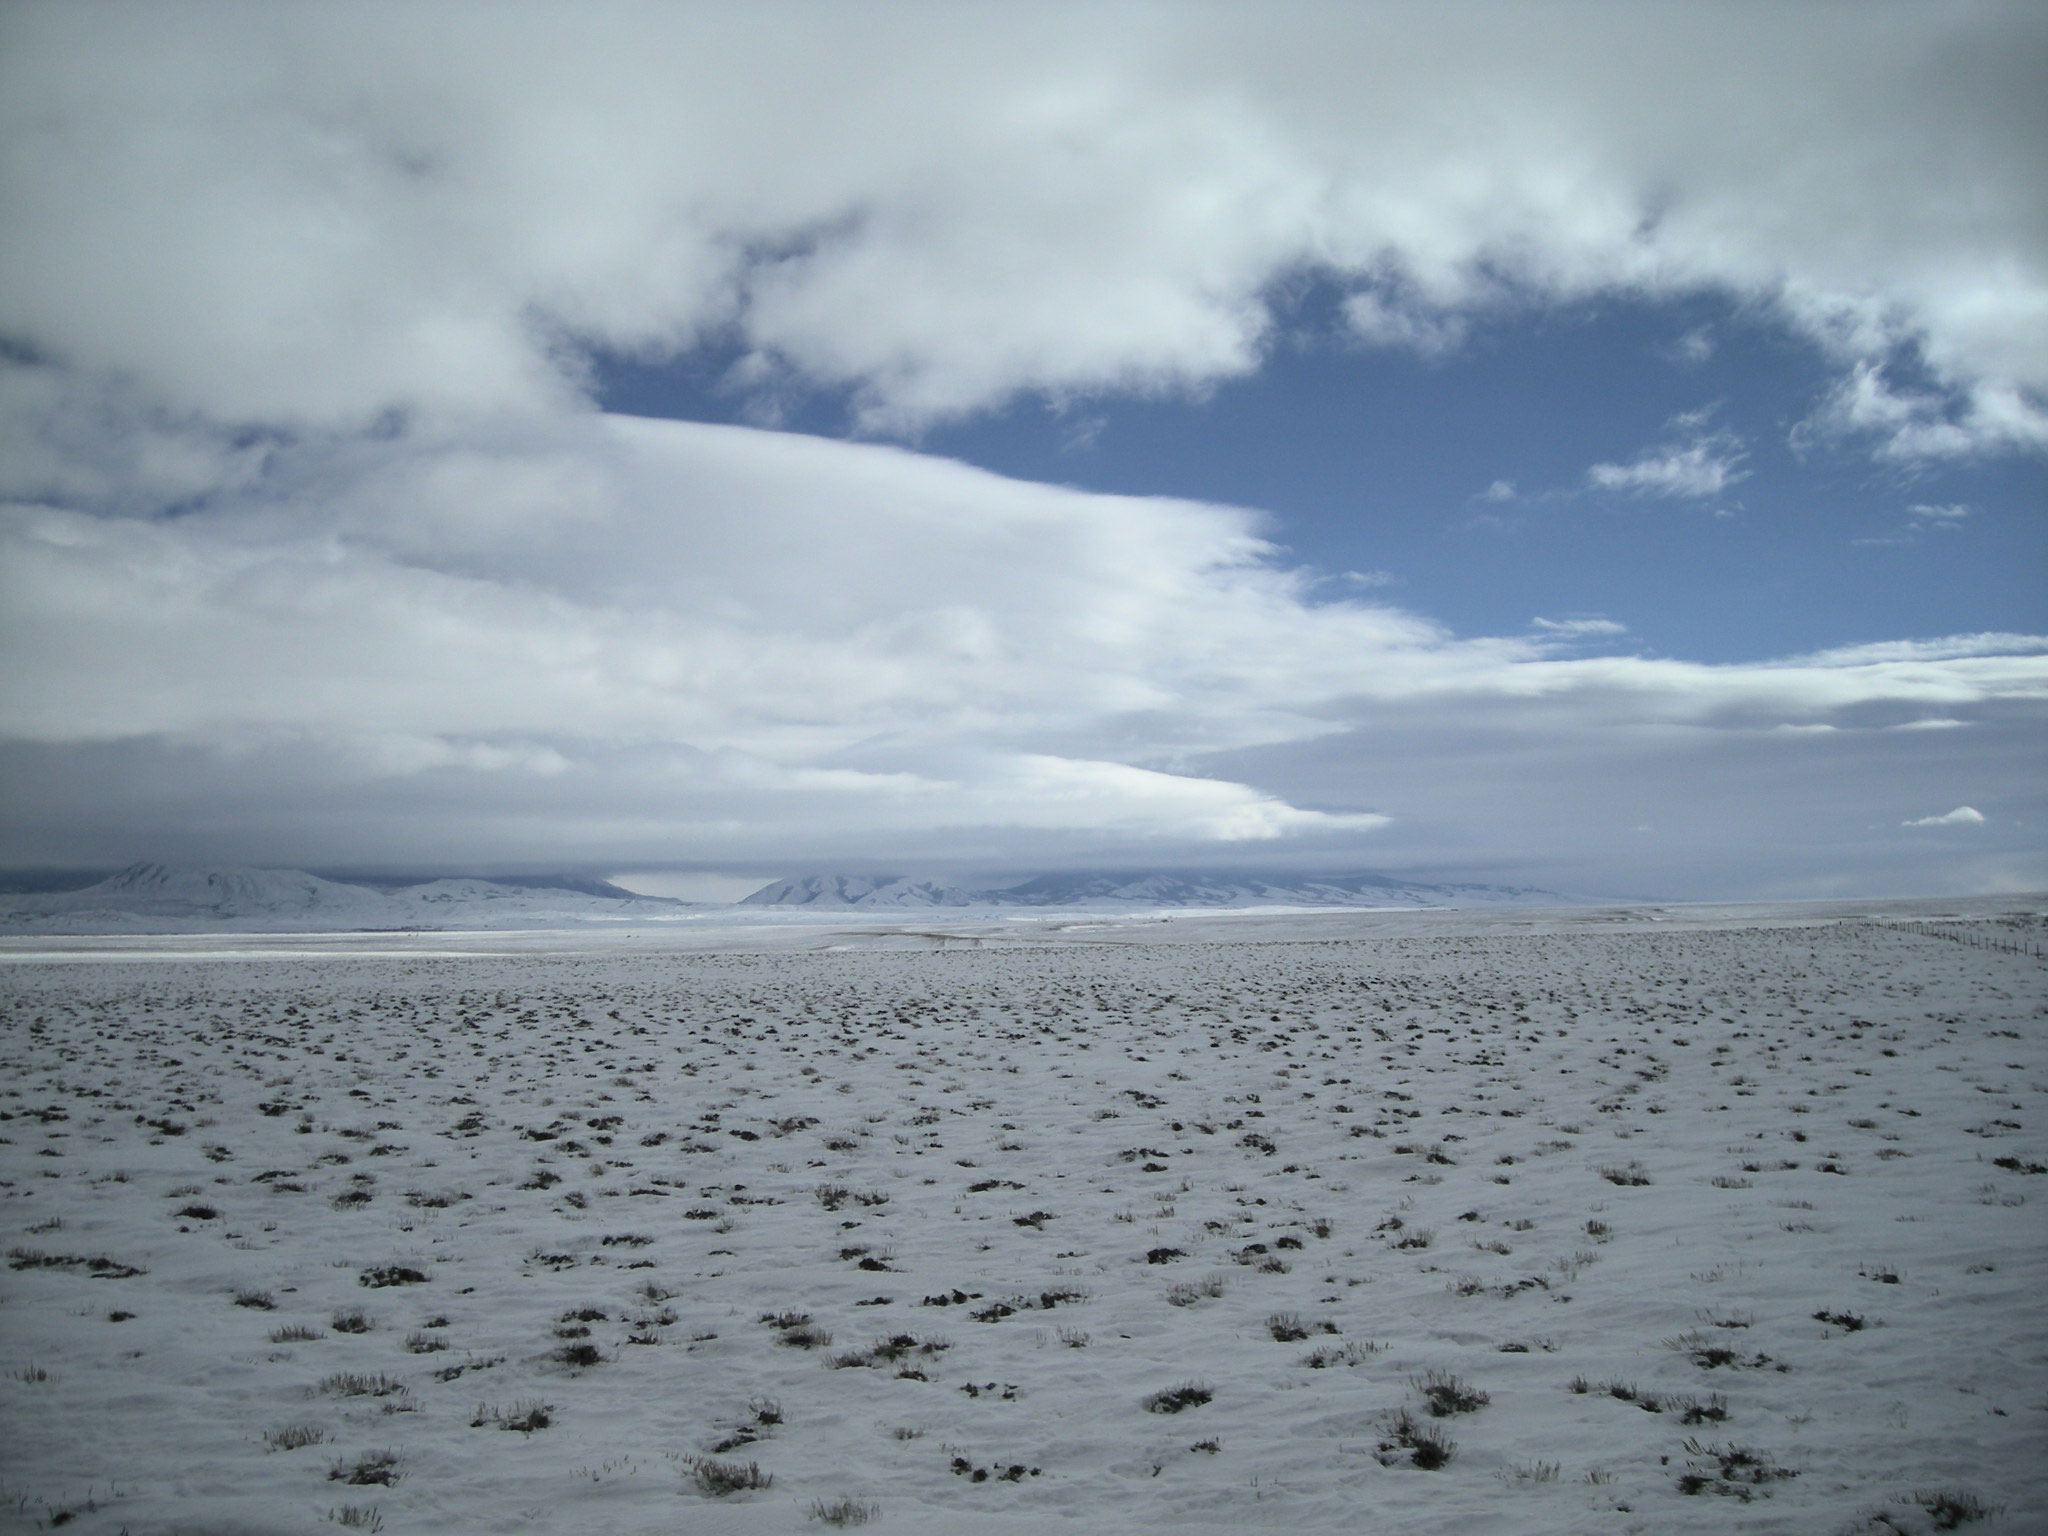 Photo: Medicine Bow Range, Wyoming